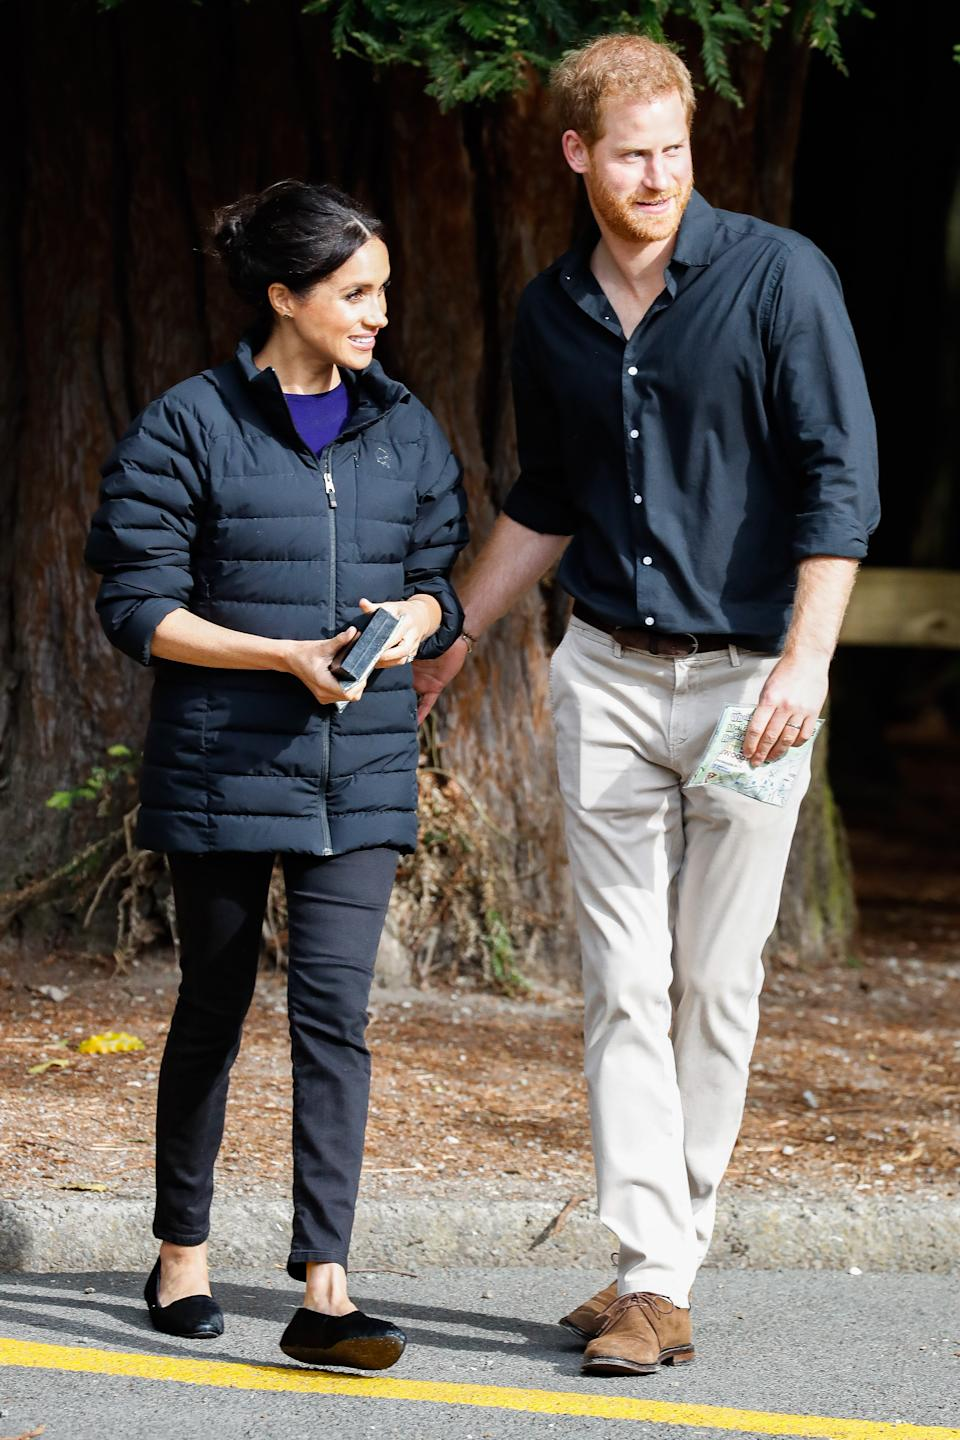 Meghan Markle wearing the Starling Loafers by Birdies during her visit to New Zealand in 2018. (Image via Getty Images)